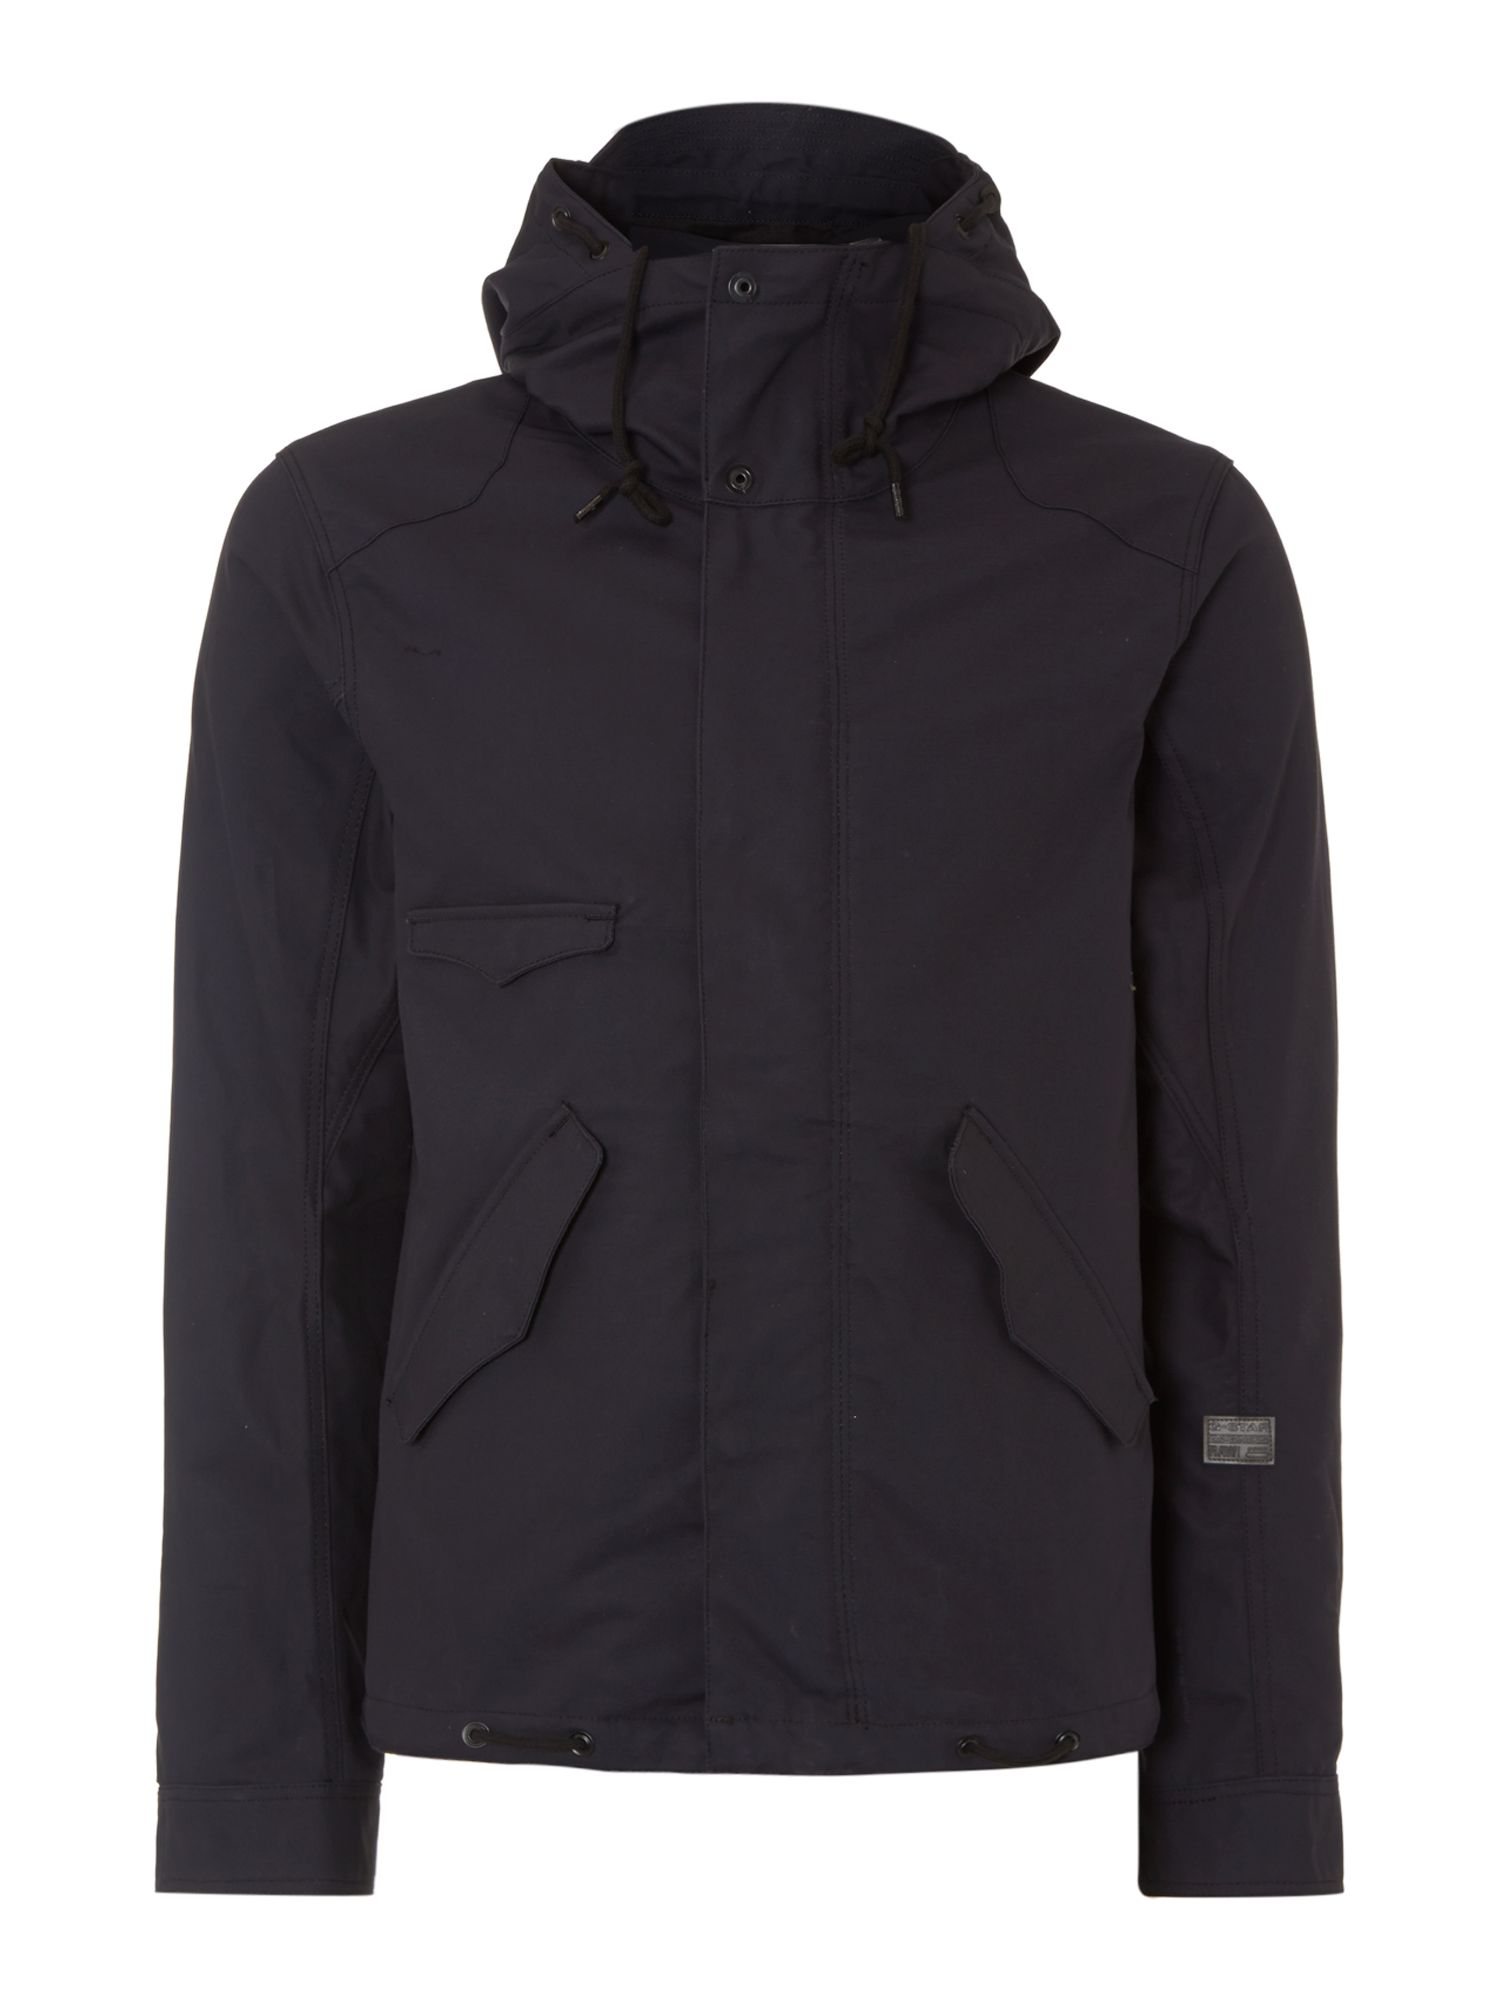 Three pocket hooded jacket